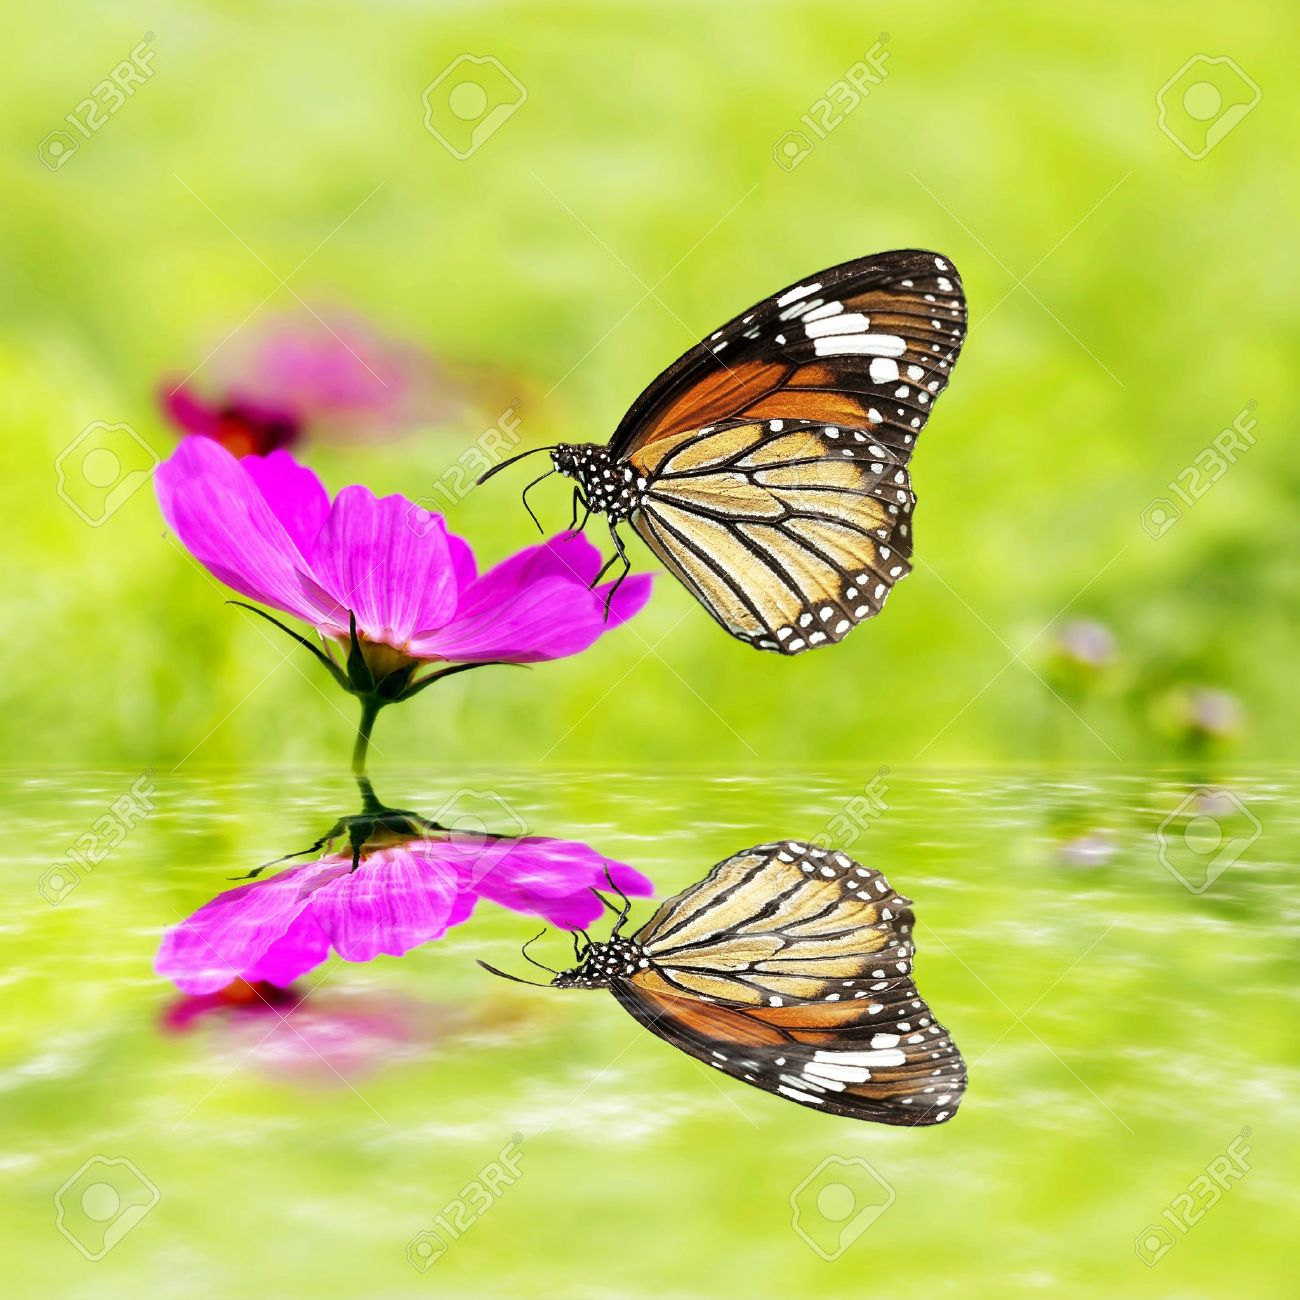 butterfly sitting on green grass field with flowers with nice